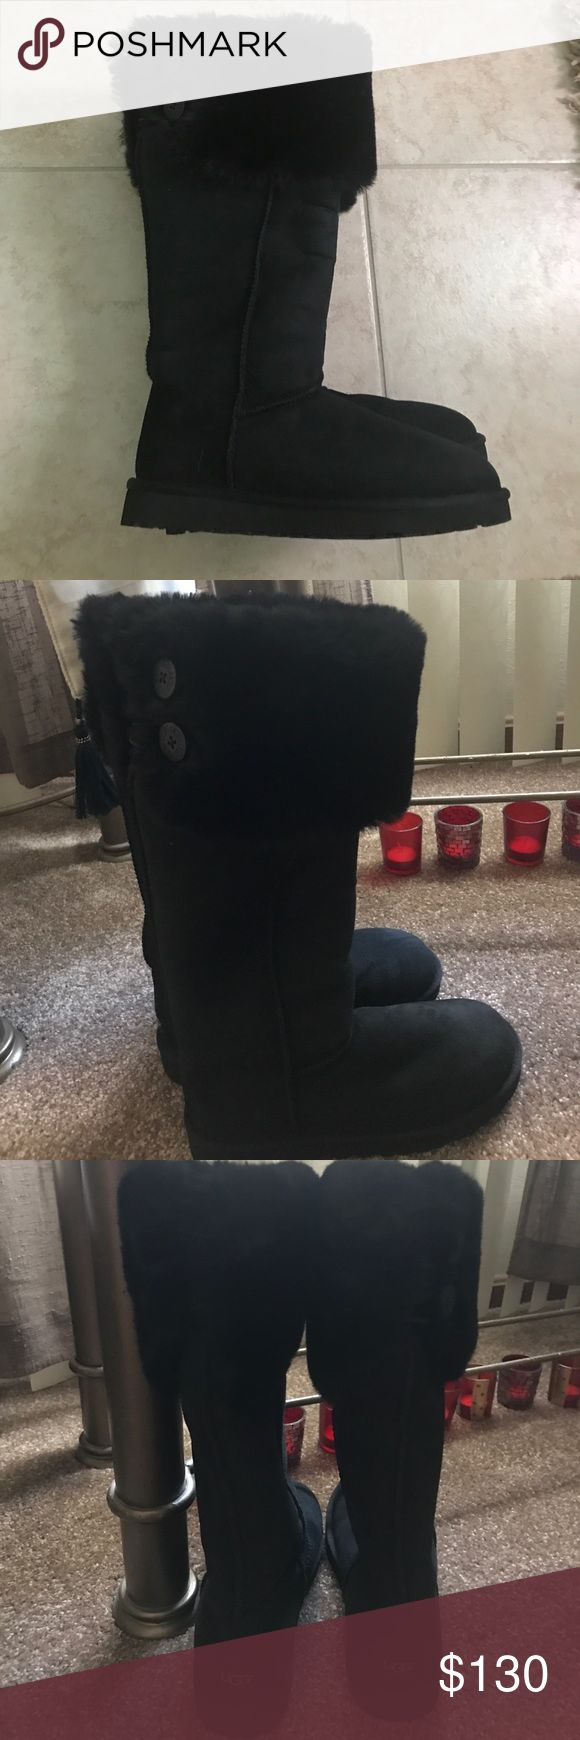 Retail 295.00 ugg Sherpa boots black w/fur sz 7 New retailed 295.00 ugg classic tall boots size 7, black. They have fur at the top and 2buttons. Brand new !!! UGG Shoes Winter & Rain Boots